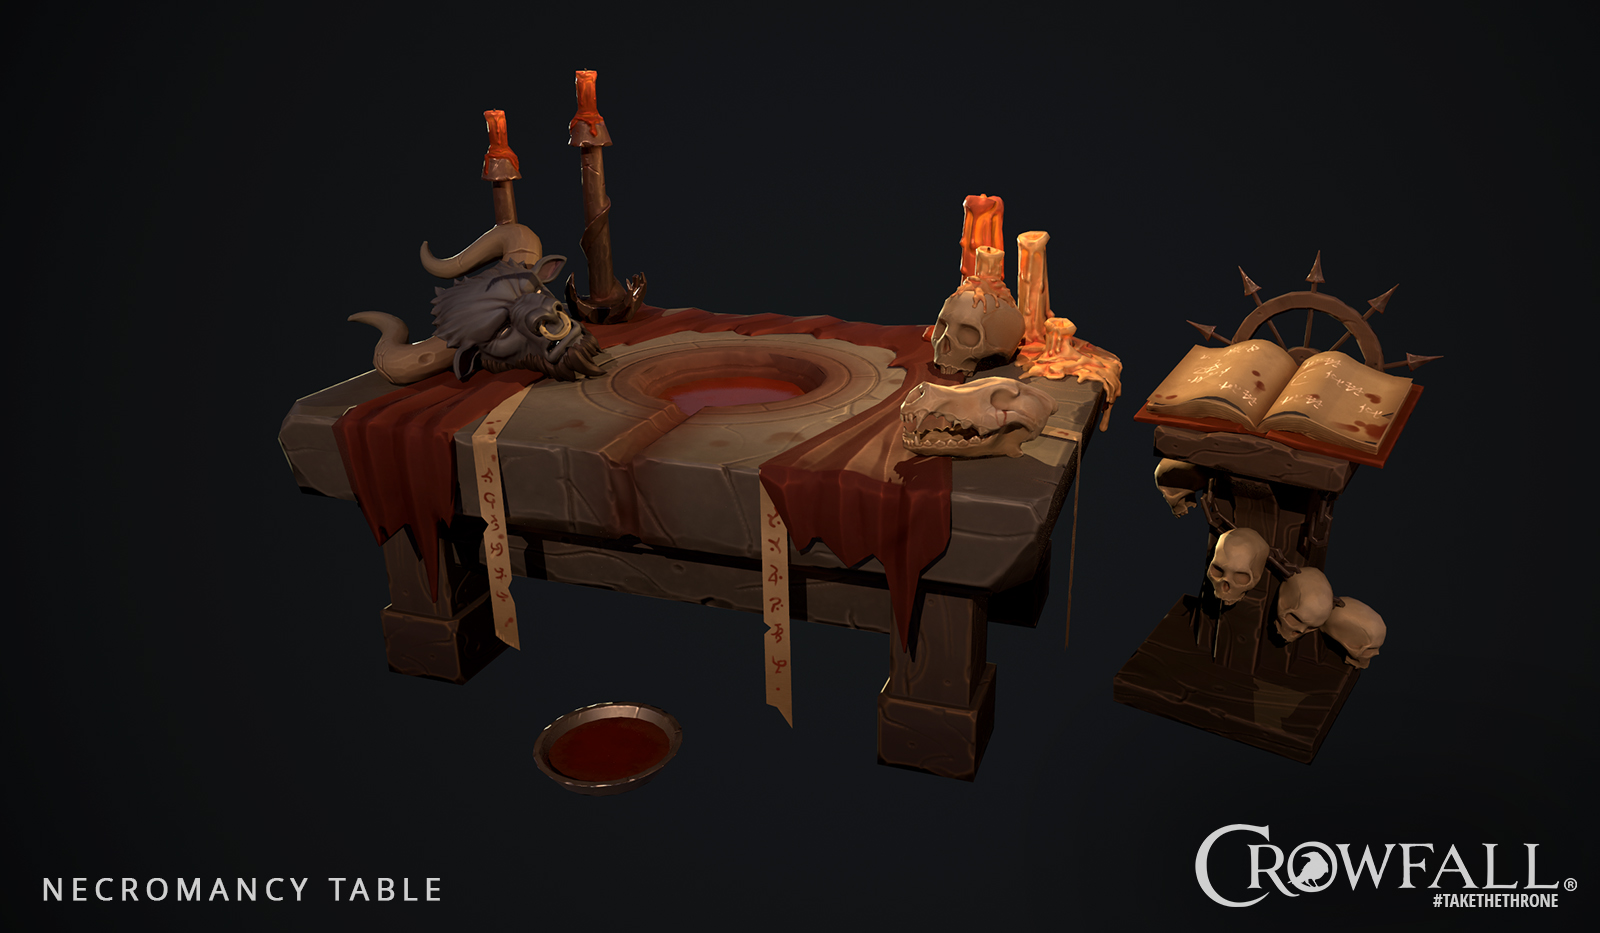 Crowfall NecroTable Watermarked